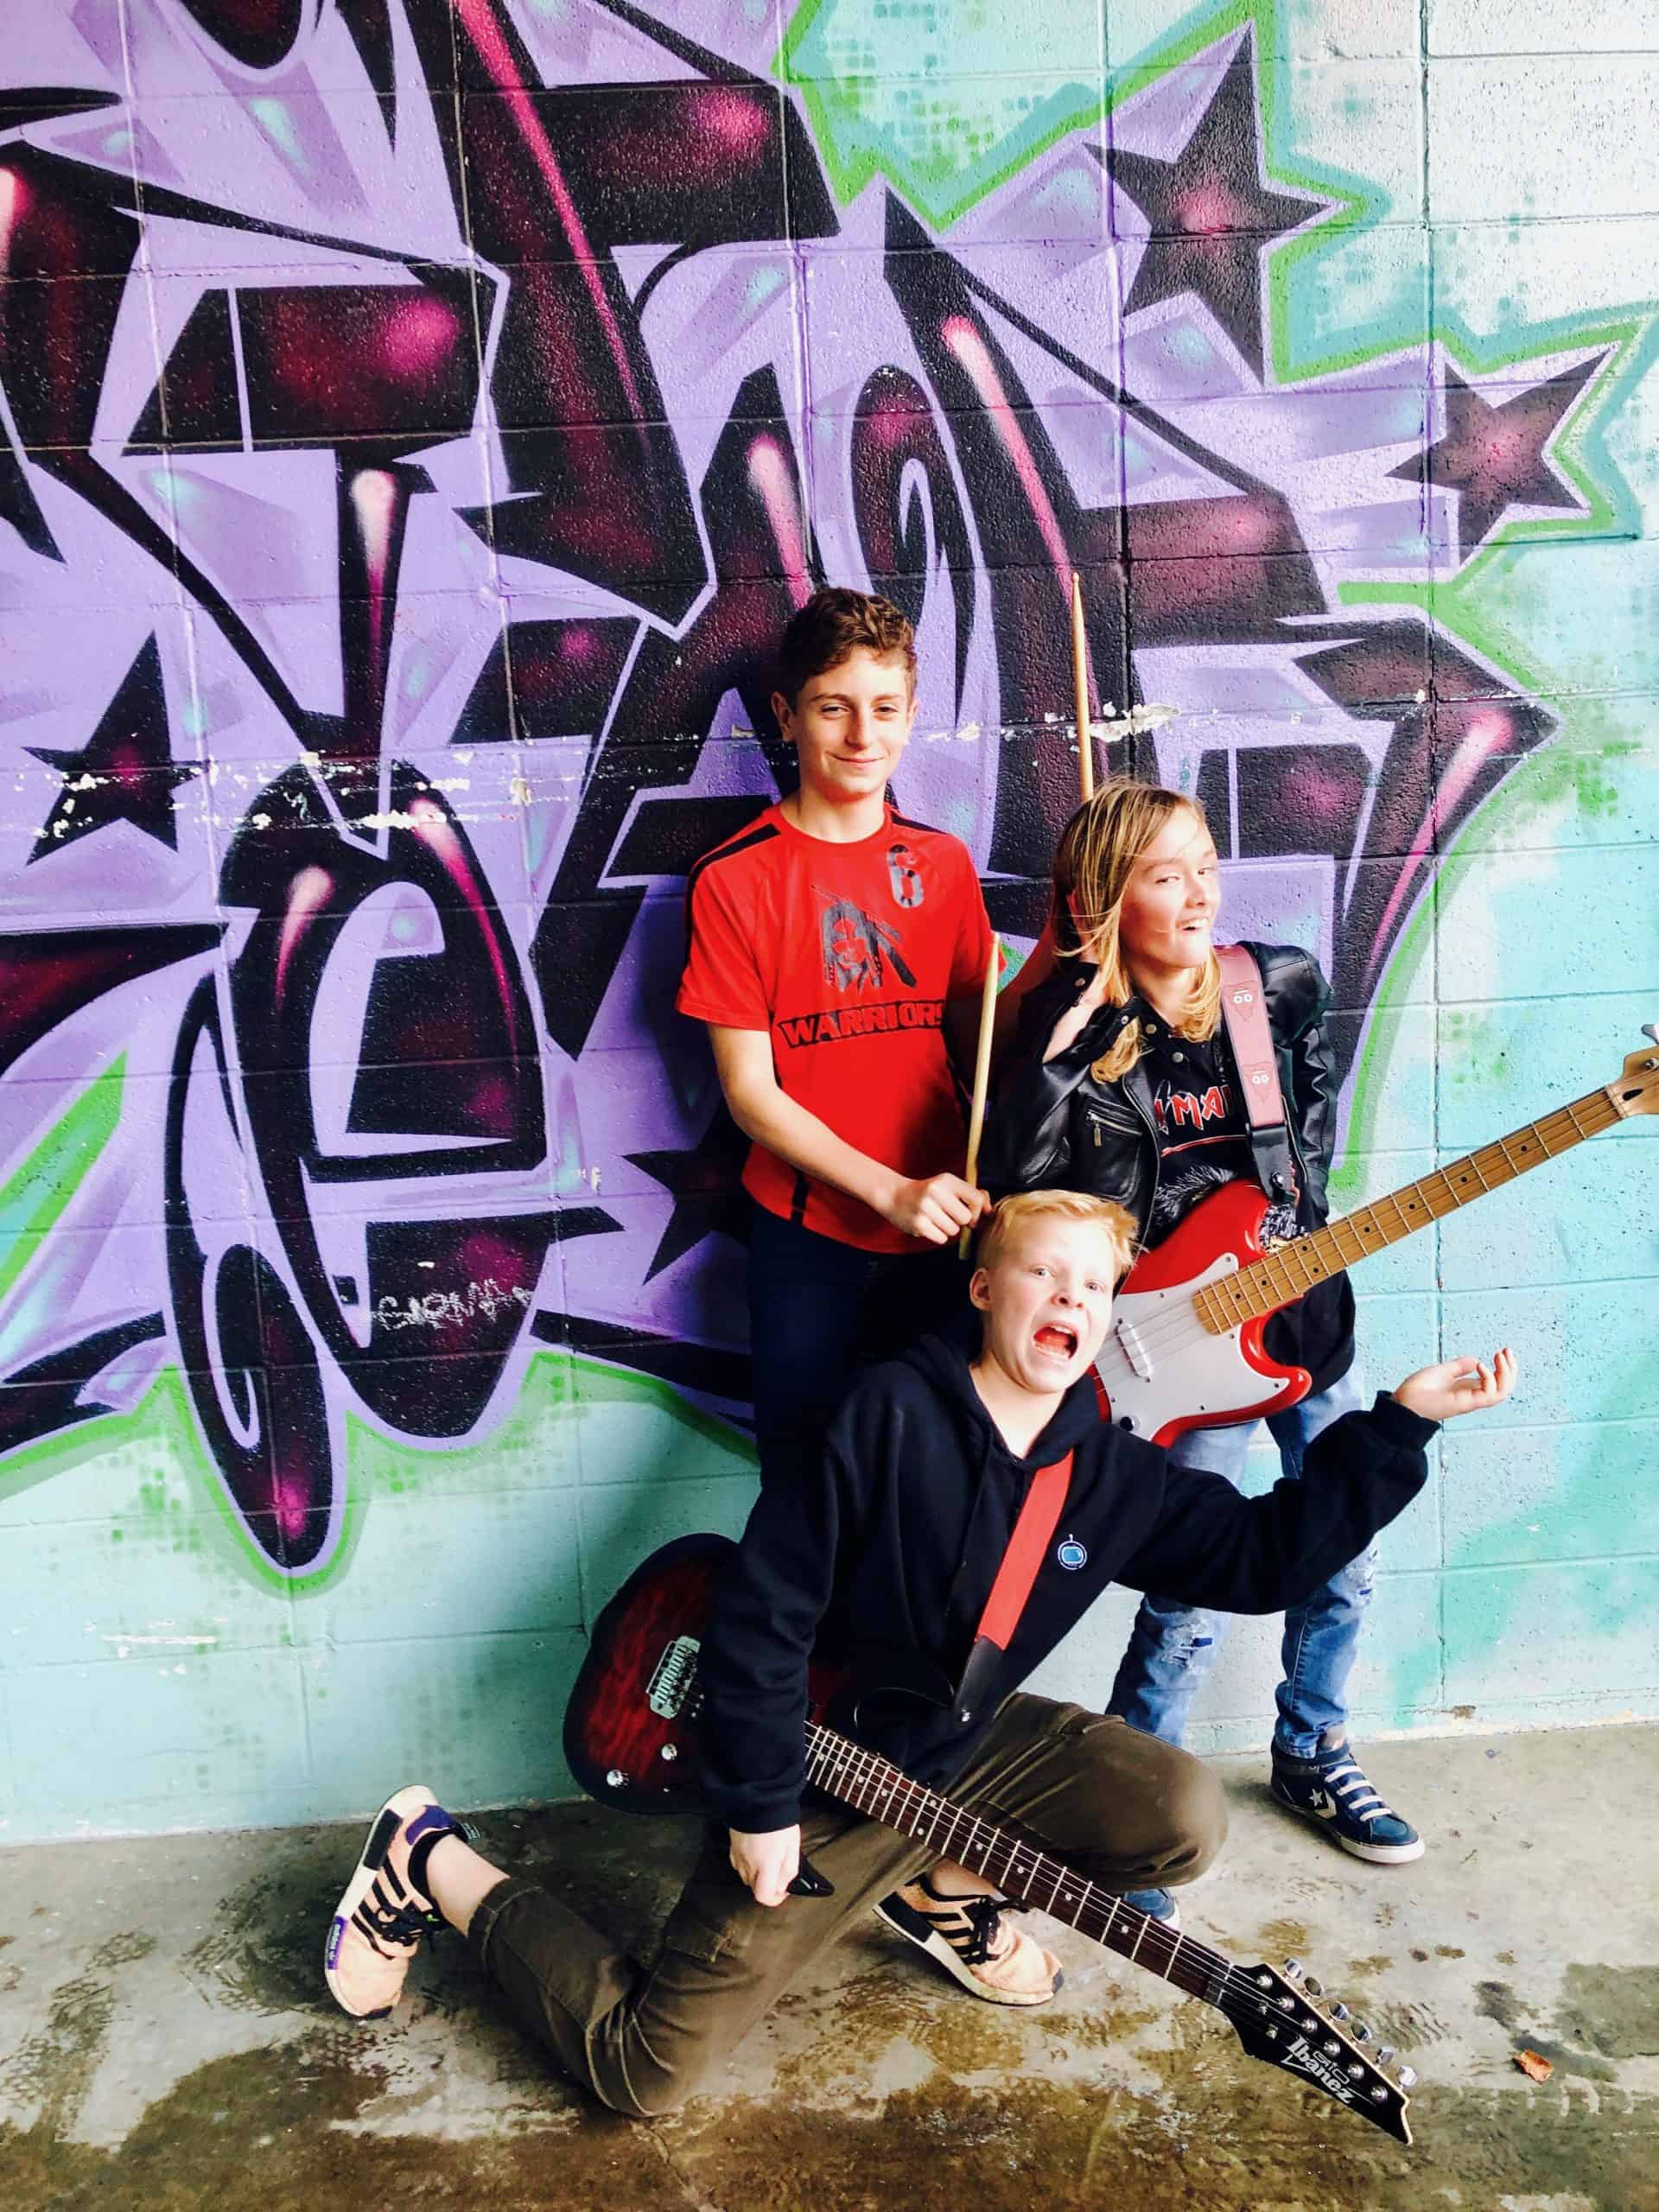 Barista Boys, a rock band at Backbeat - the place for rock bands and music lessons